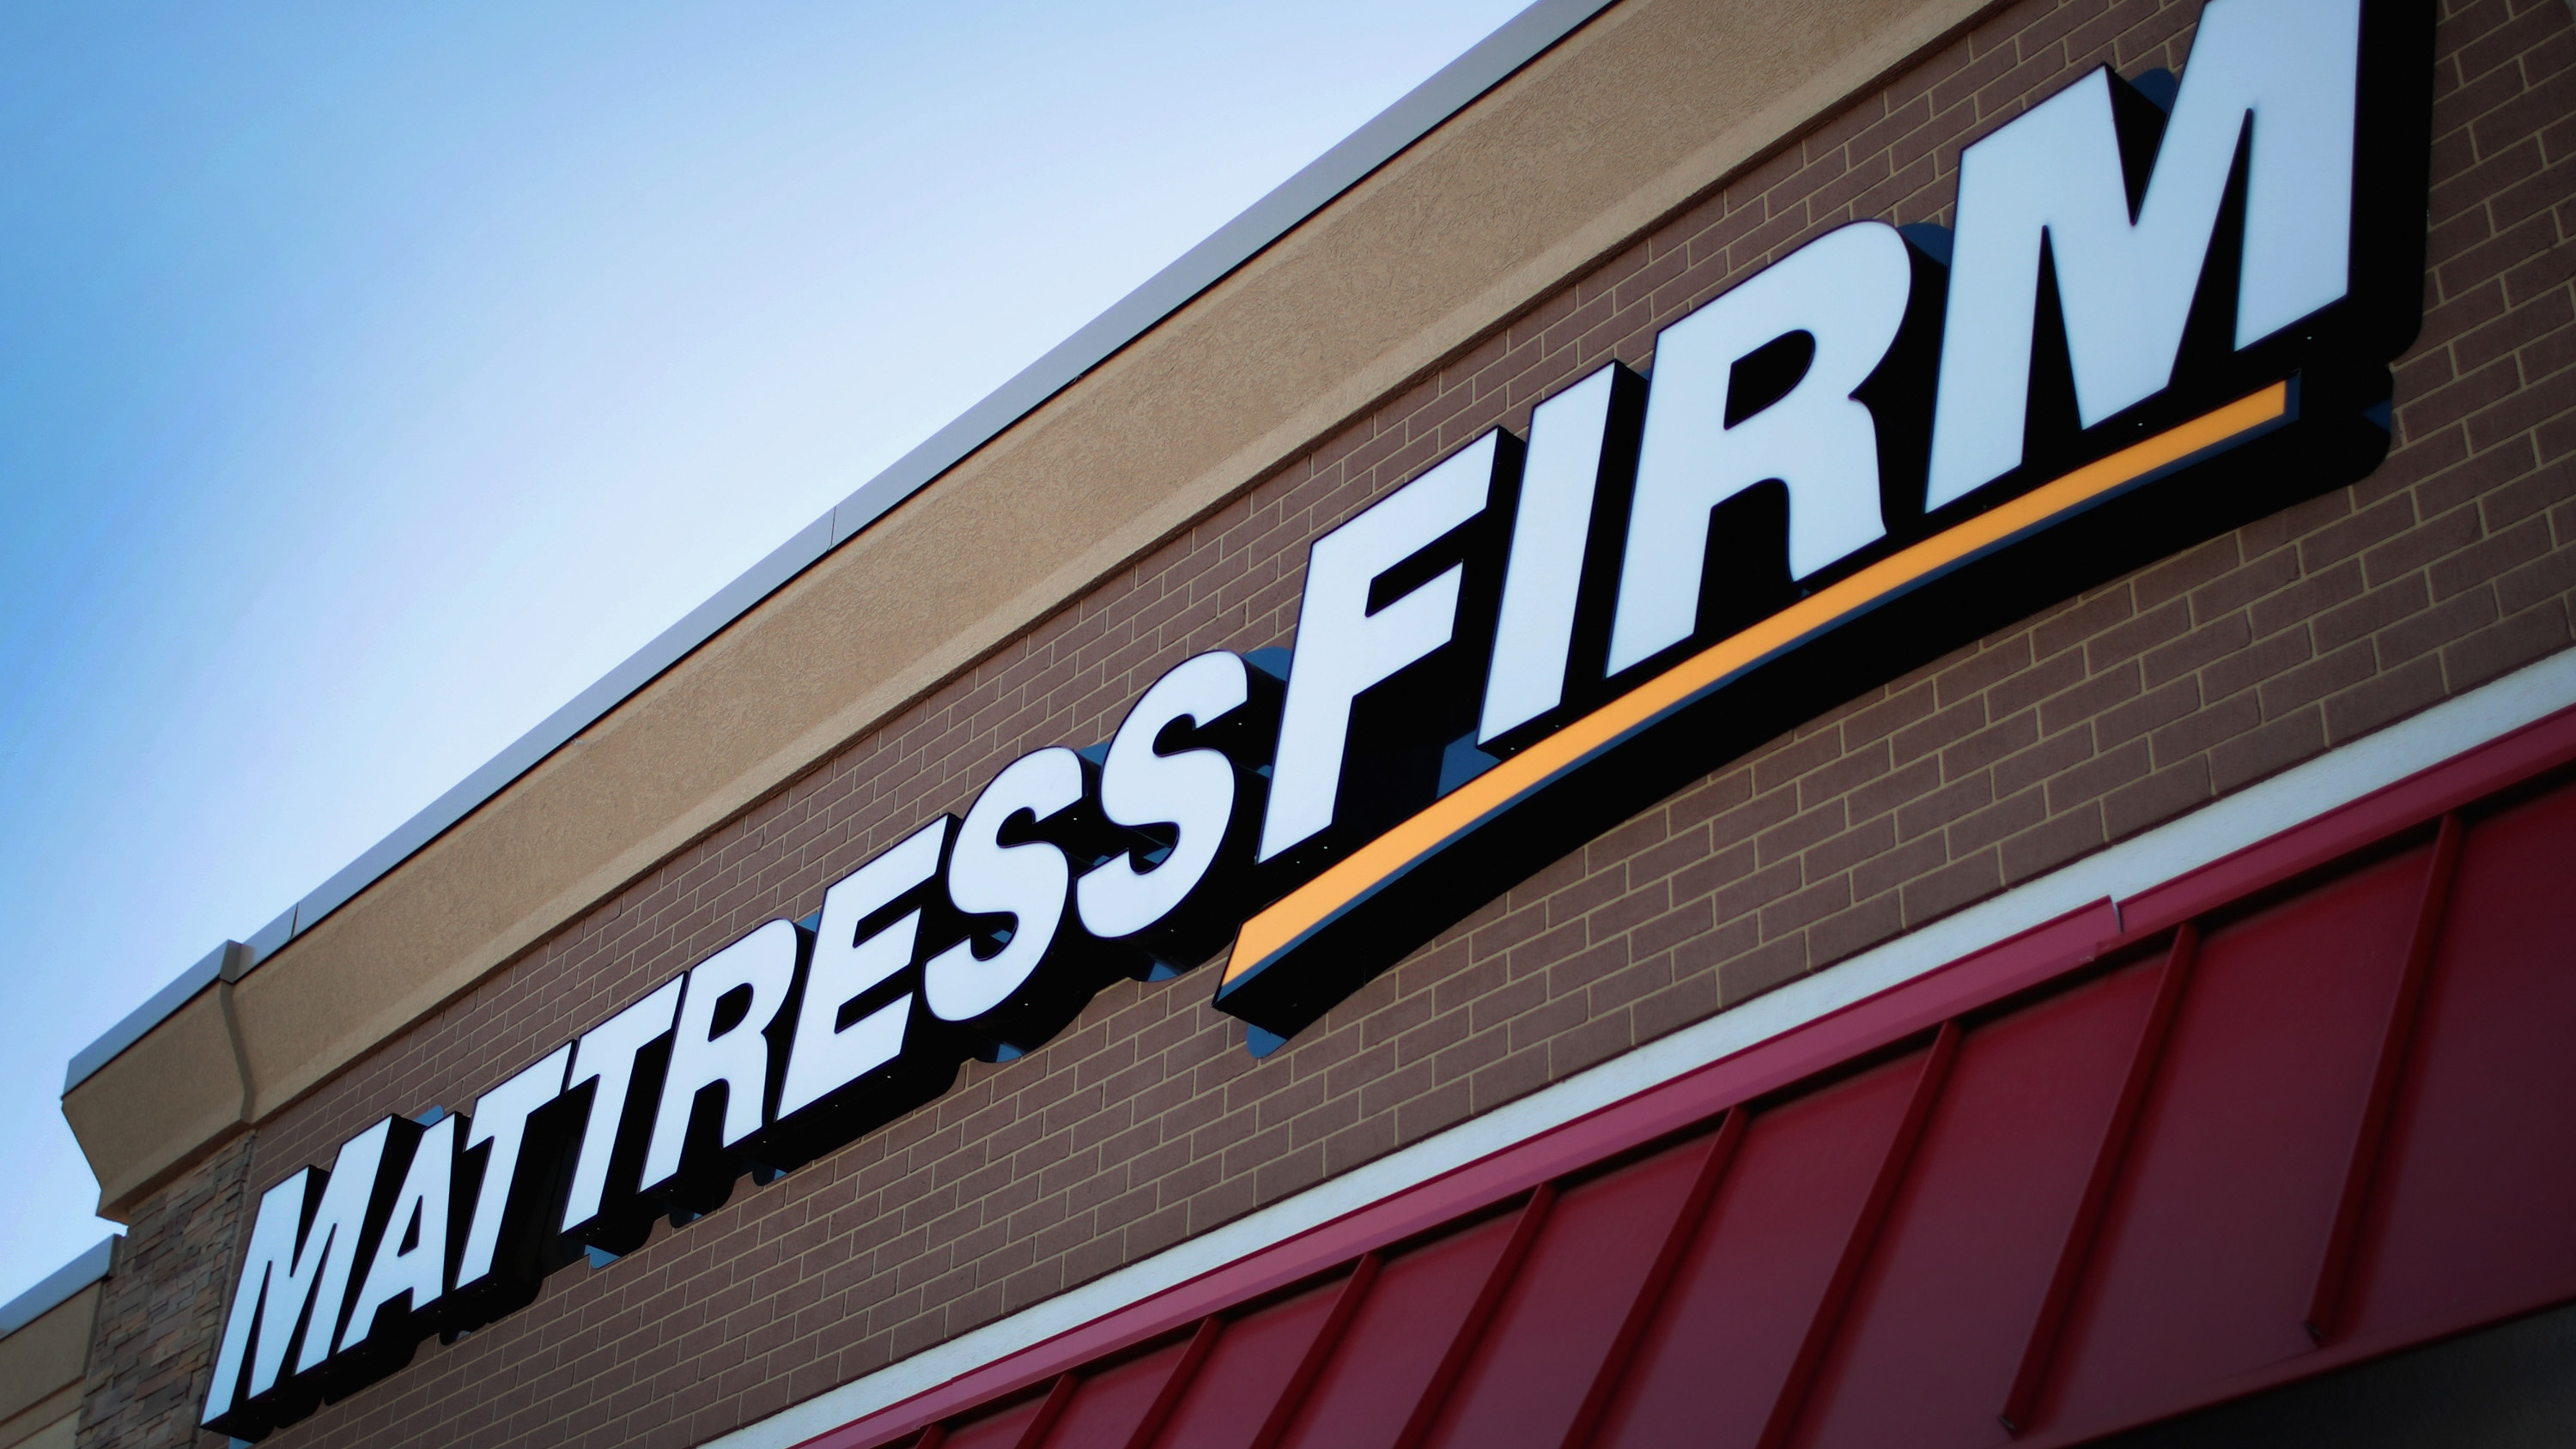 Report: 5 Georgia stores to close in Mattress Firm bankruptcy